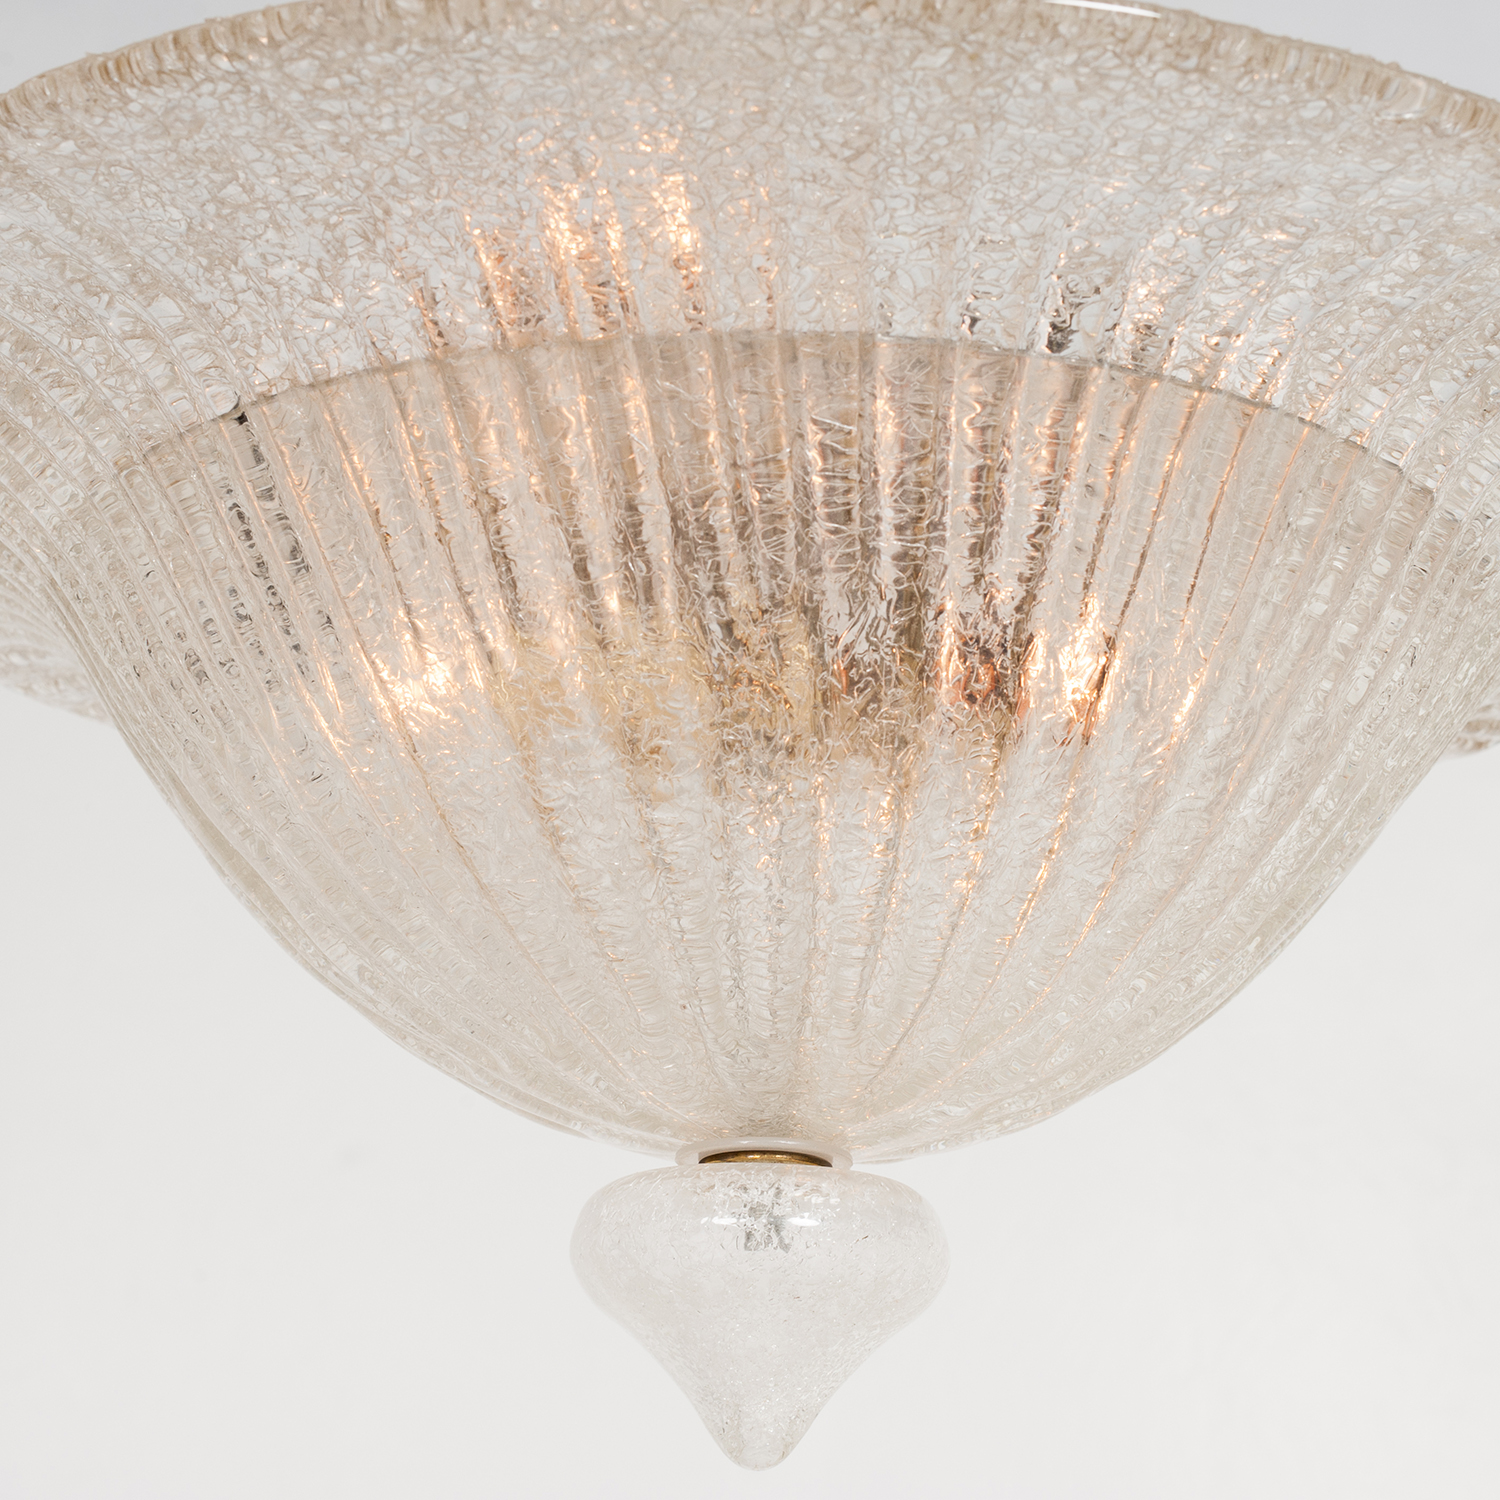 Murano Glass Pendant In The Style Of Barovier & Toso, 1950s, Italy 86